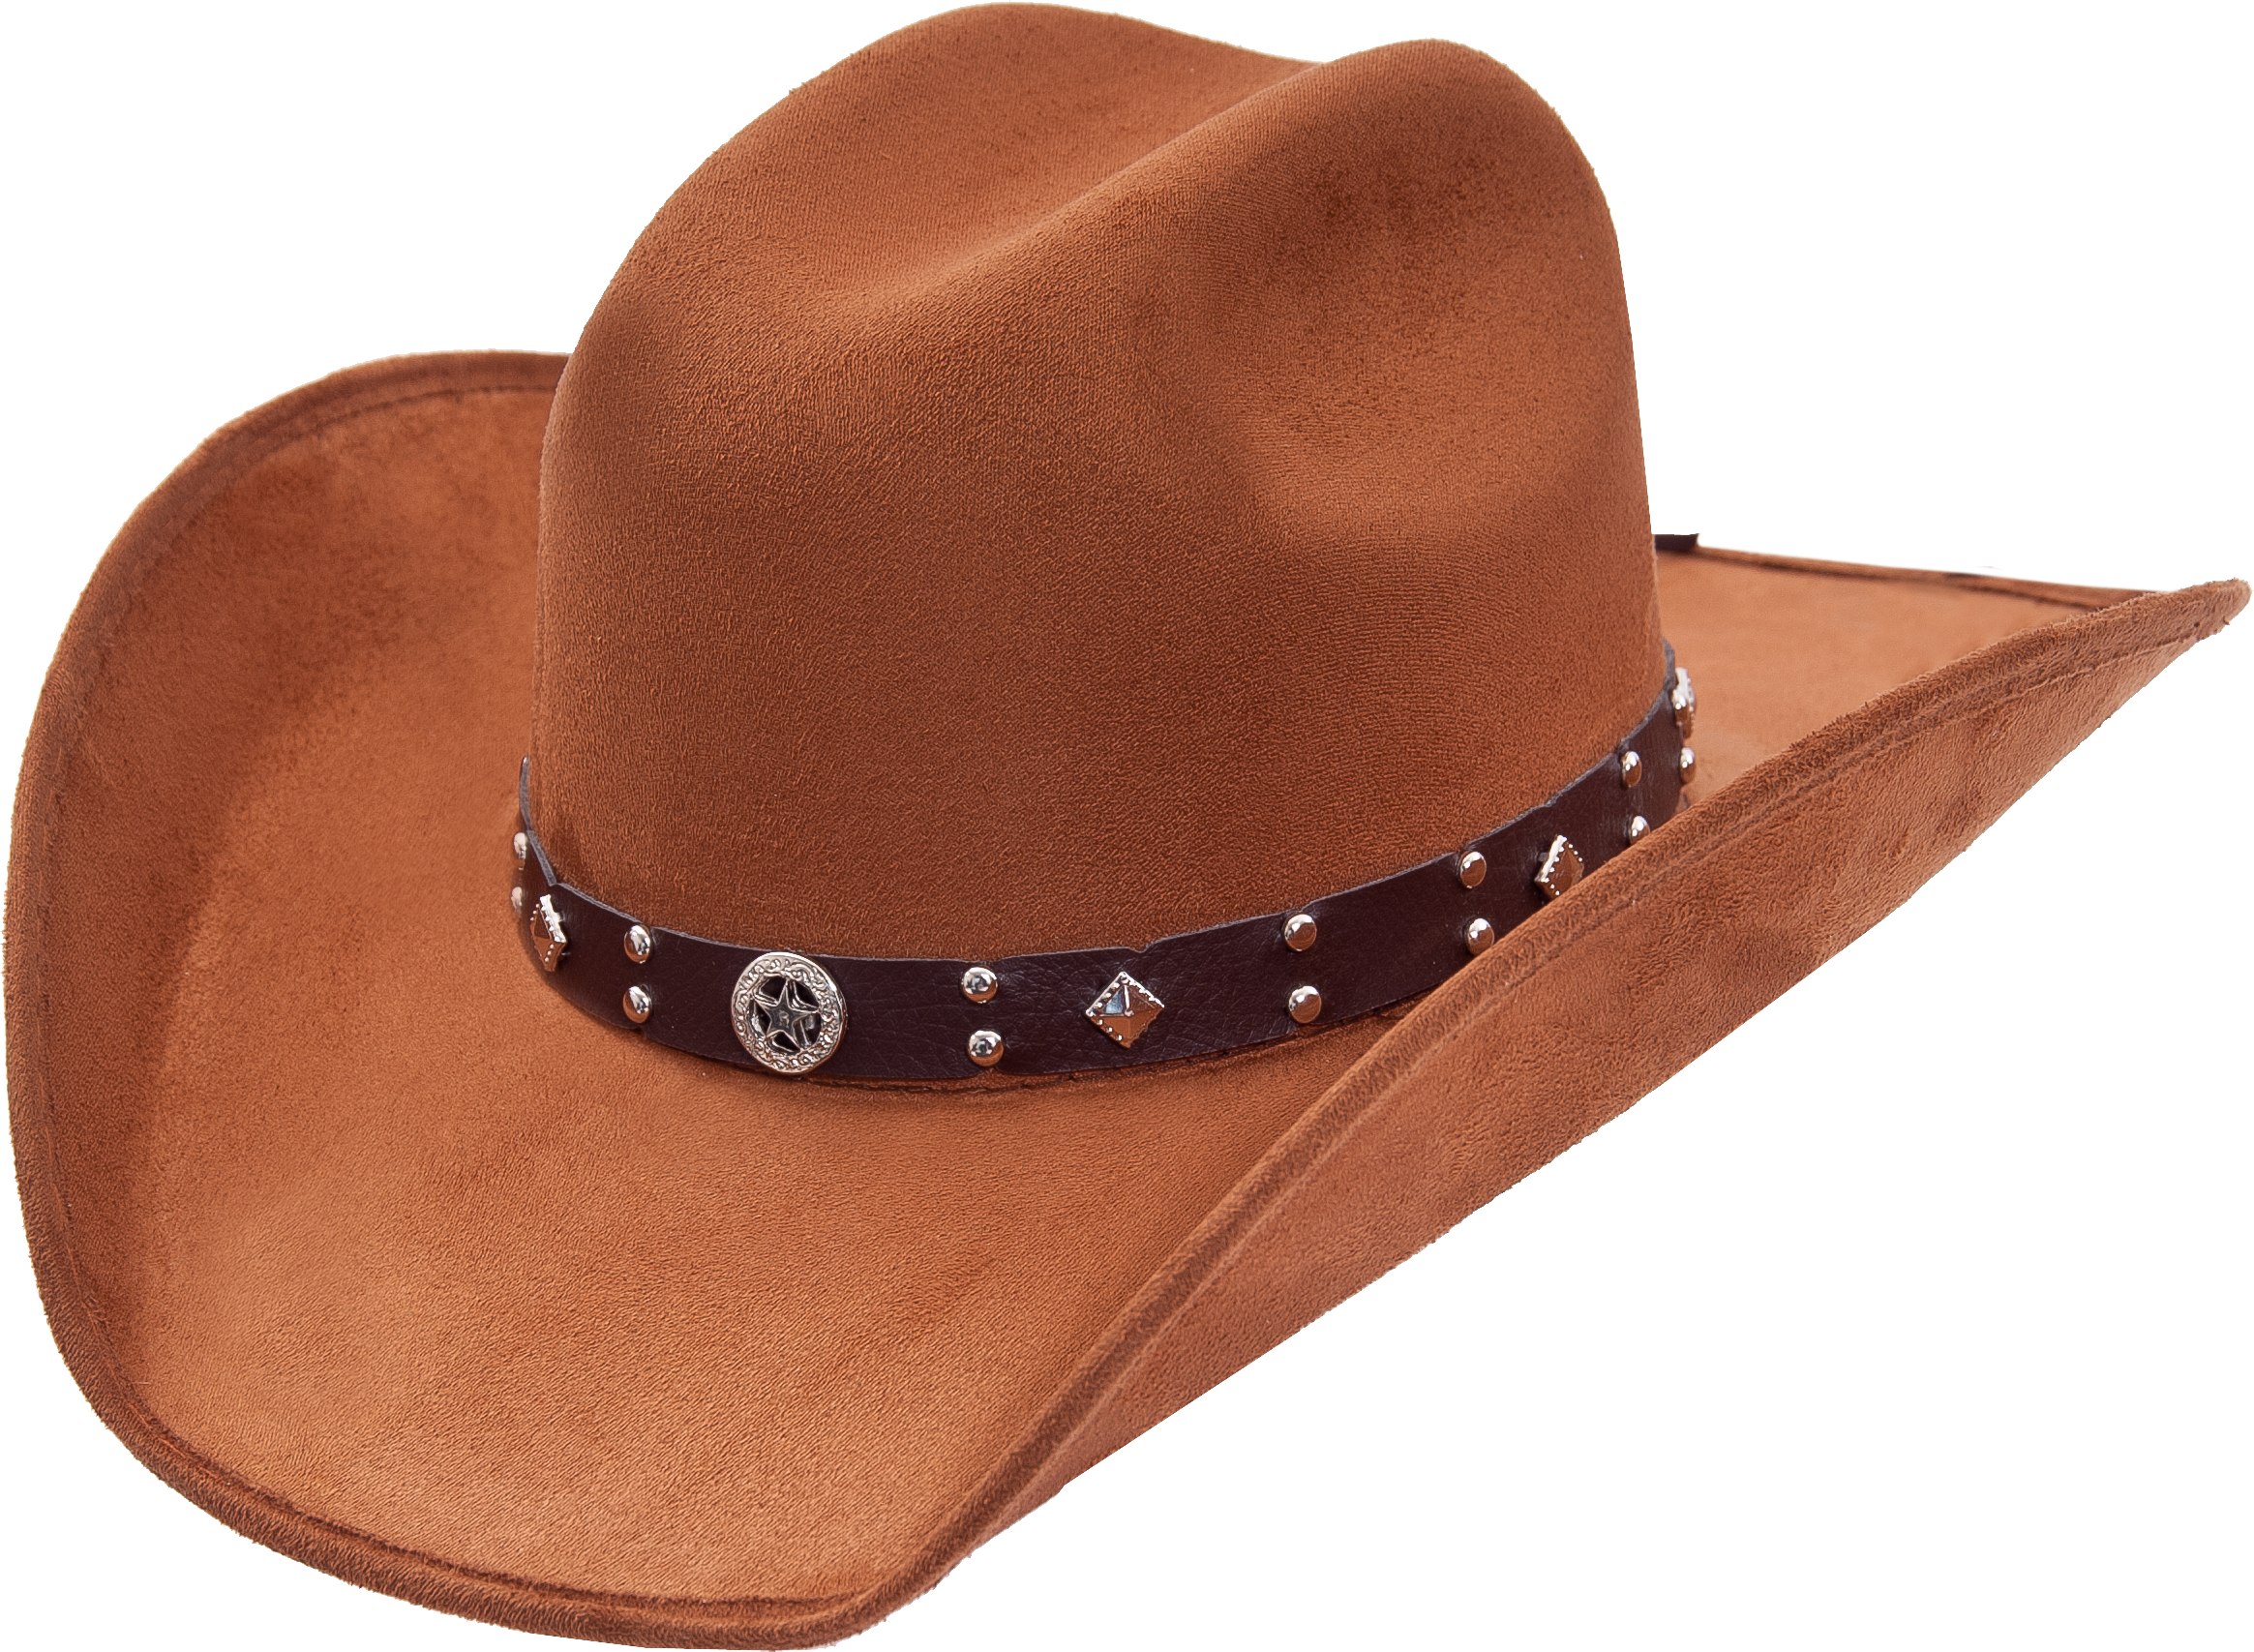 Straw cowboy hat png. Free download clip art